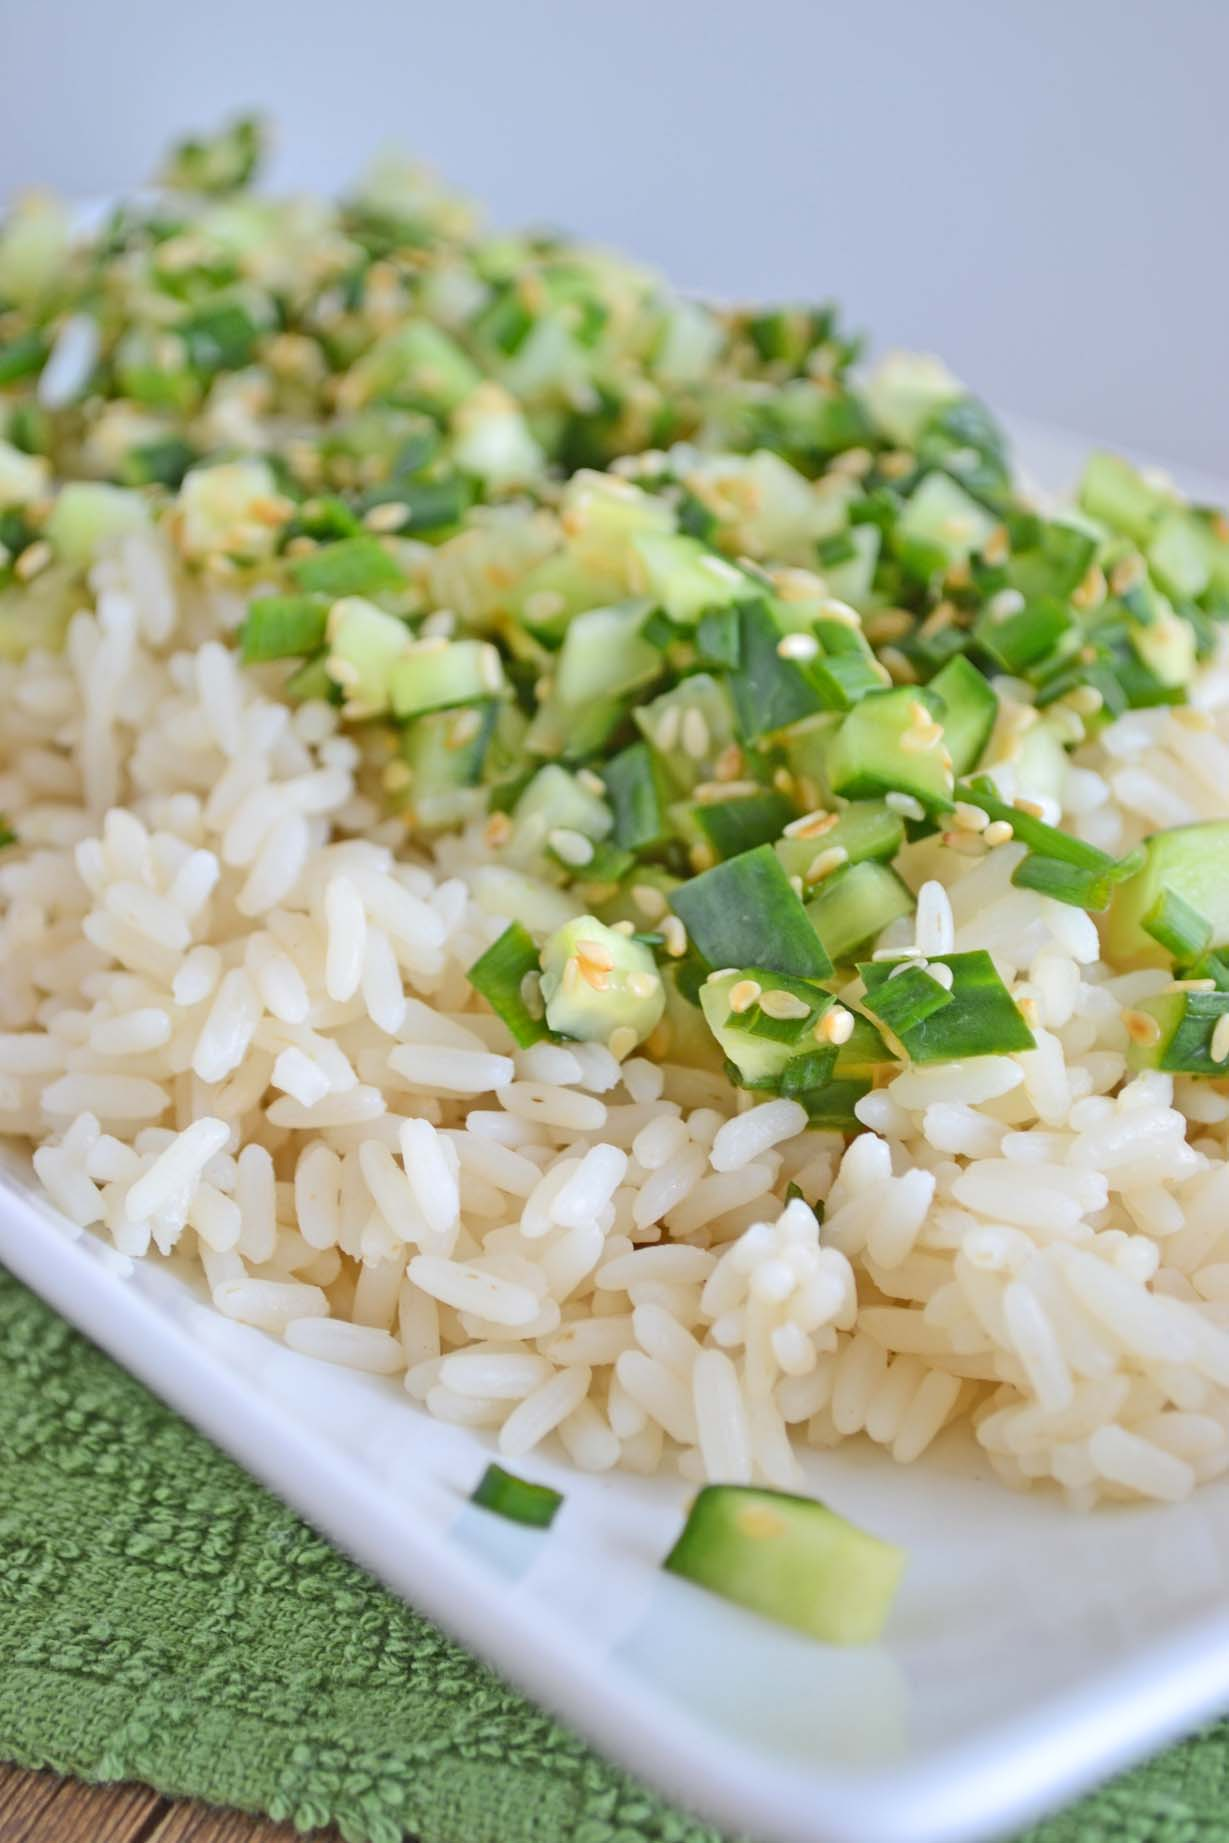 Warm Sesame Rice Salad with Cold Cucumber, Chive, and Lime